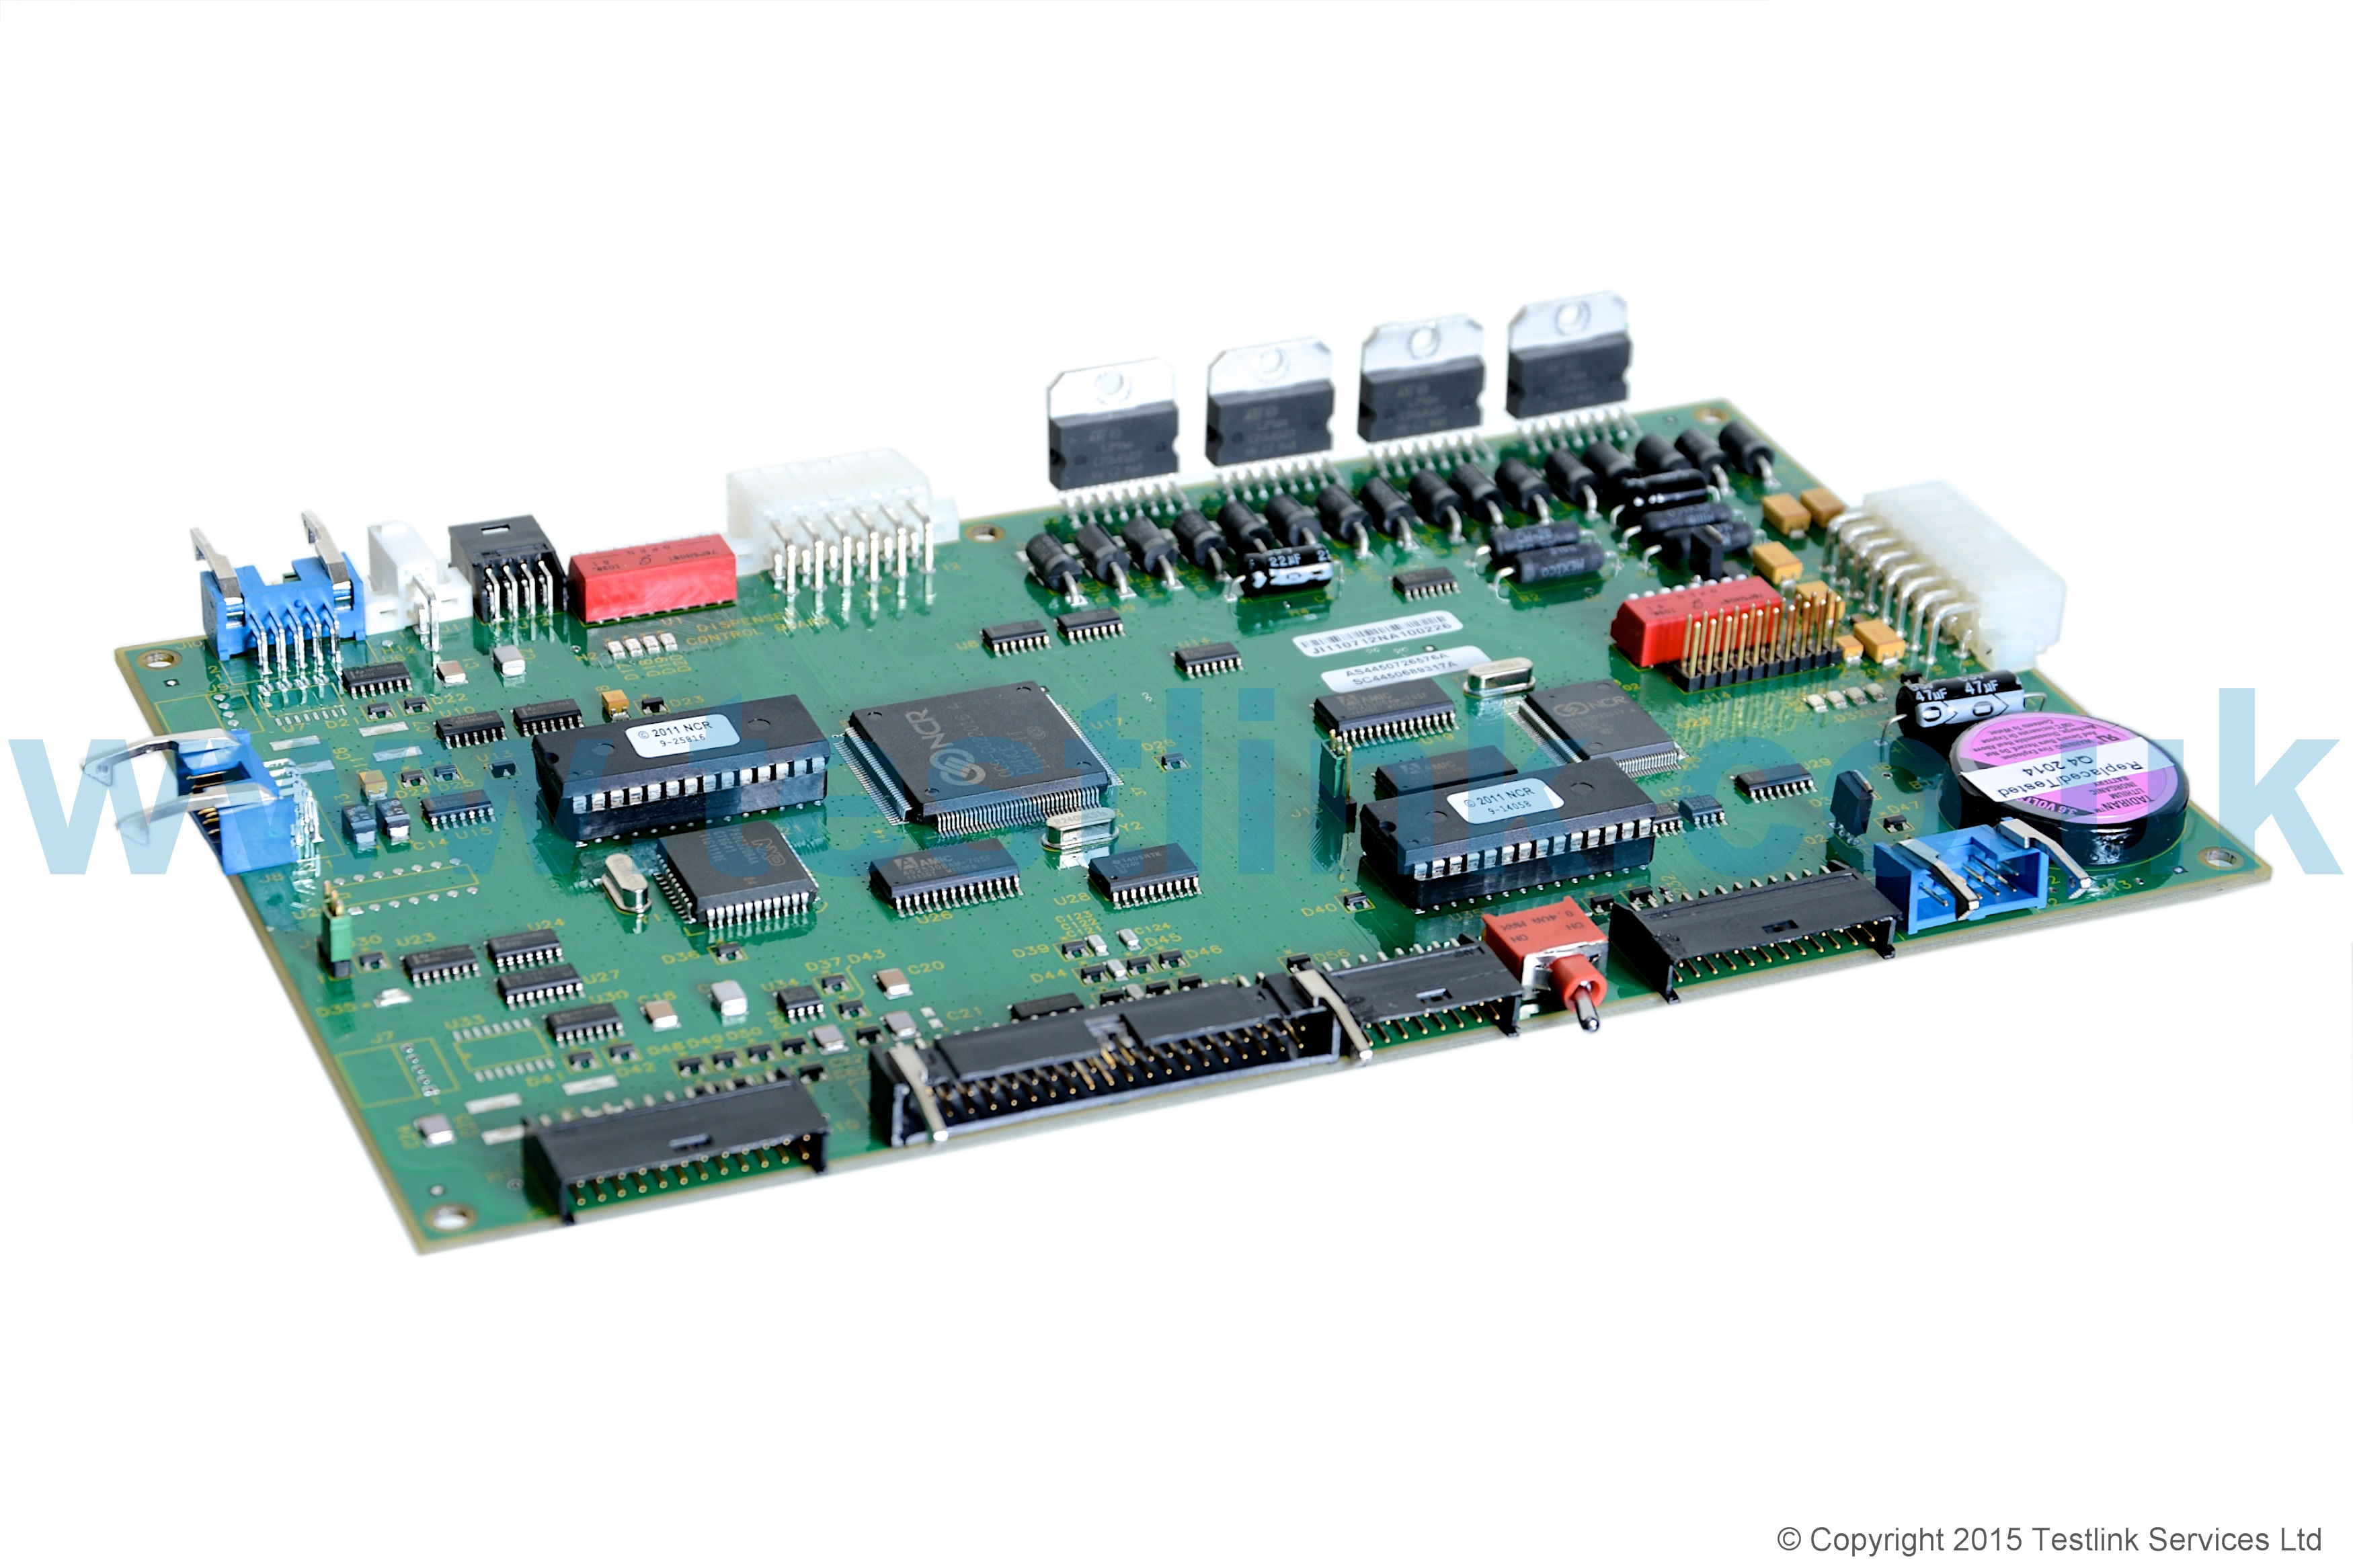 4450726576 Ncr Pcb Dispenser Control Enhanced 4g Nts Only Printed Circuit Card Board No Image Available